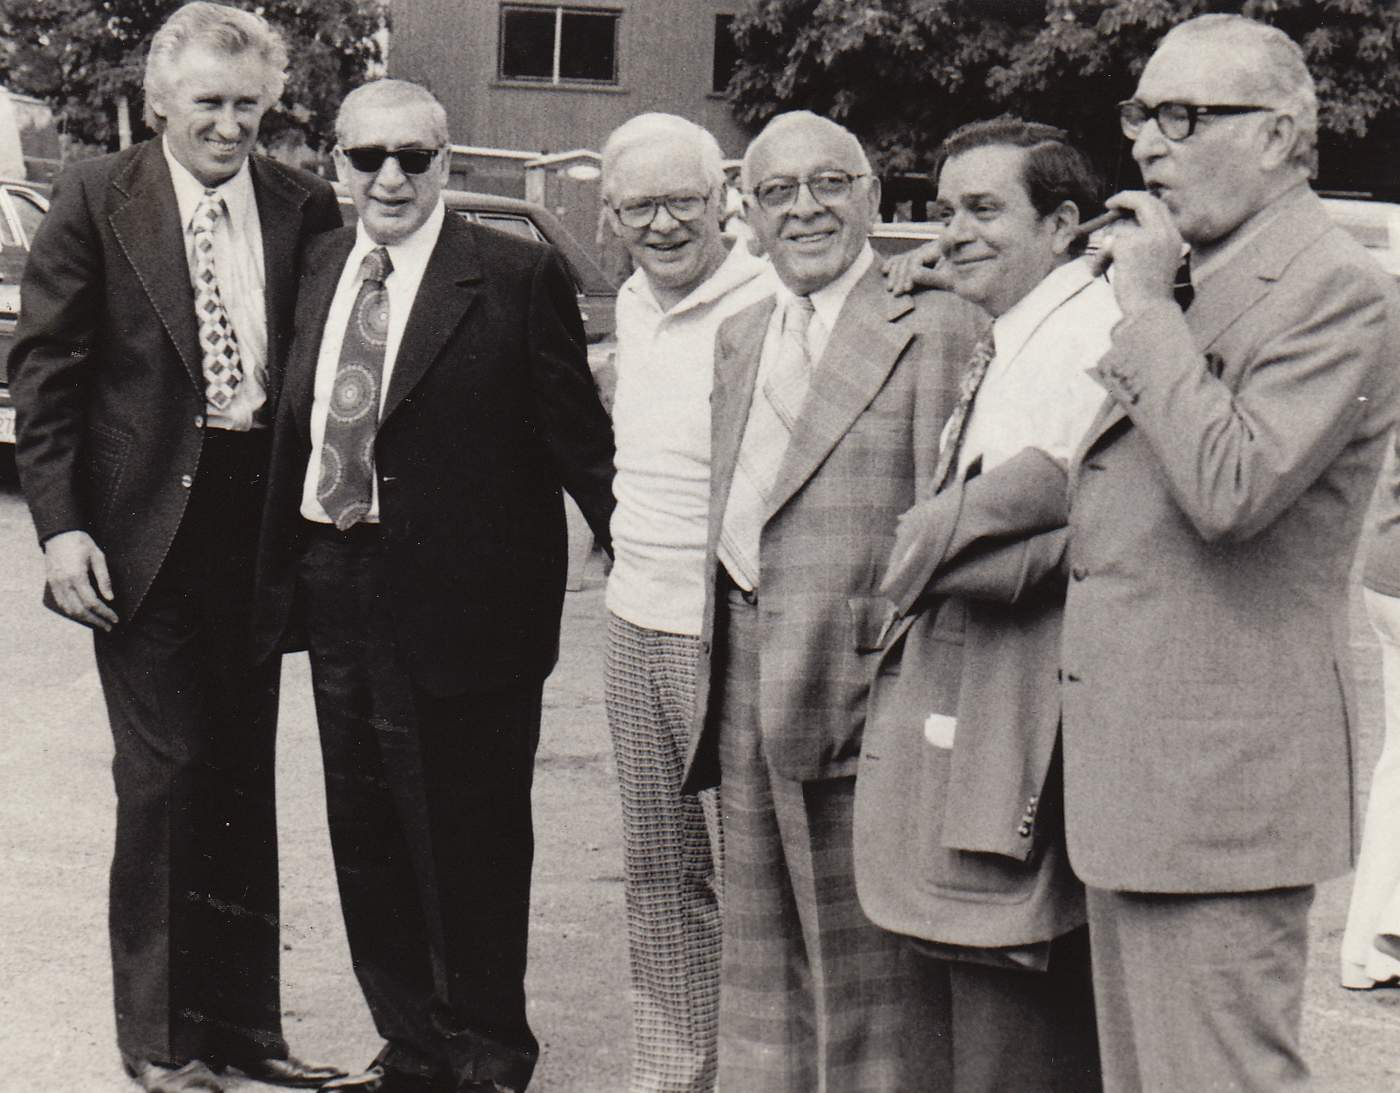 Alderman Roti (second from right) and political pals met for a golf outing in 1980. (Courtesy Denny Johnson)